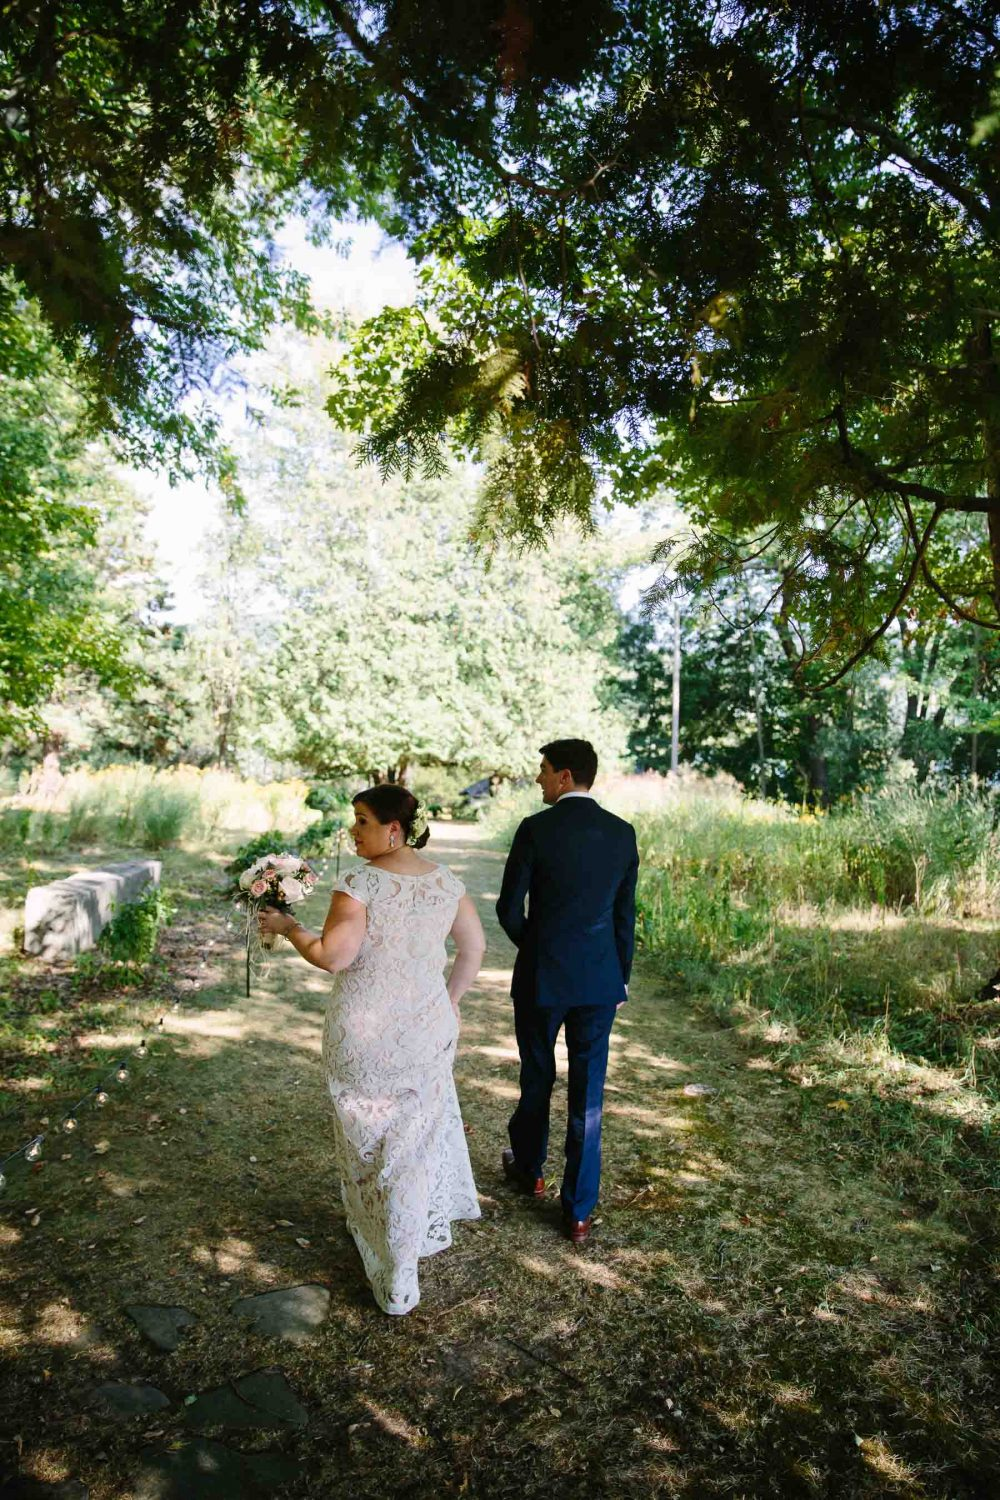 022-garden-wedding-cooperstown-ny-photographer